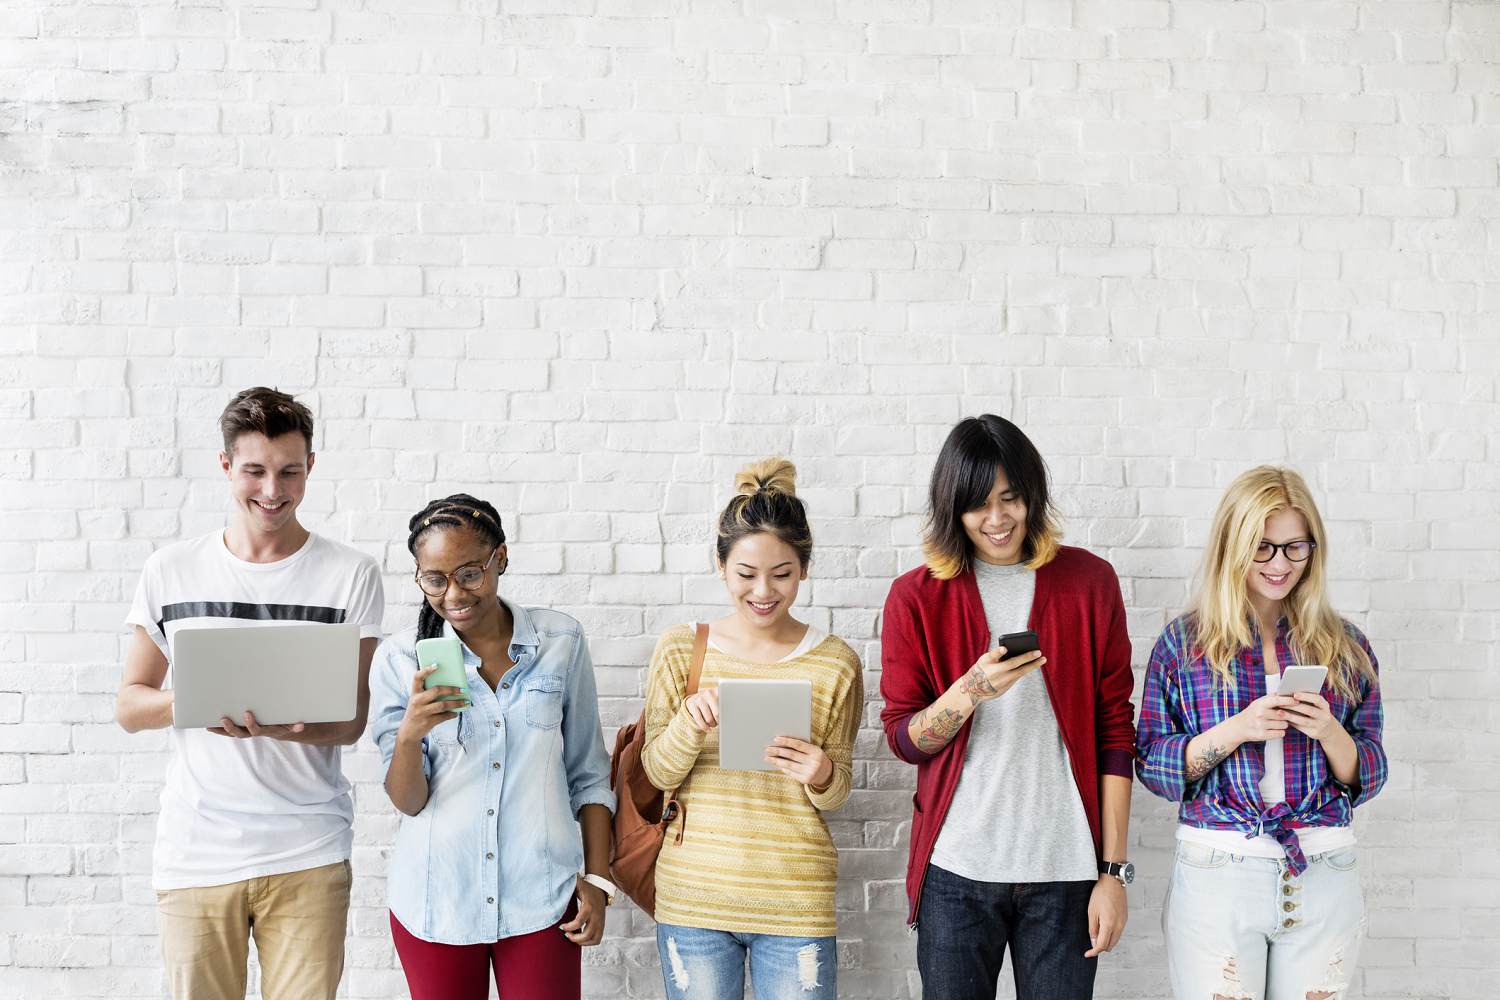 6 Tips for Your Social Media Marketing Strategy